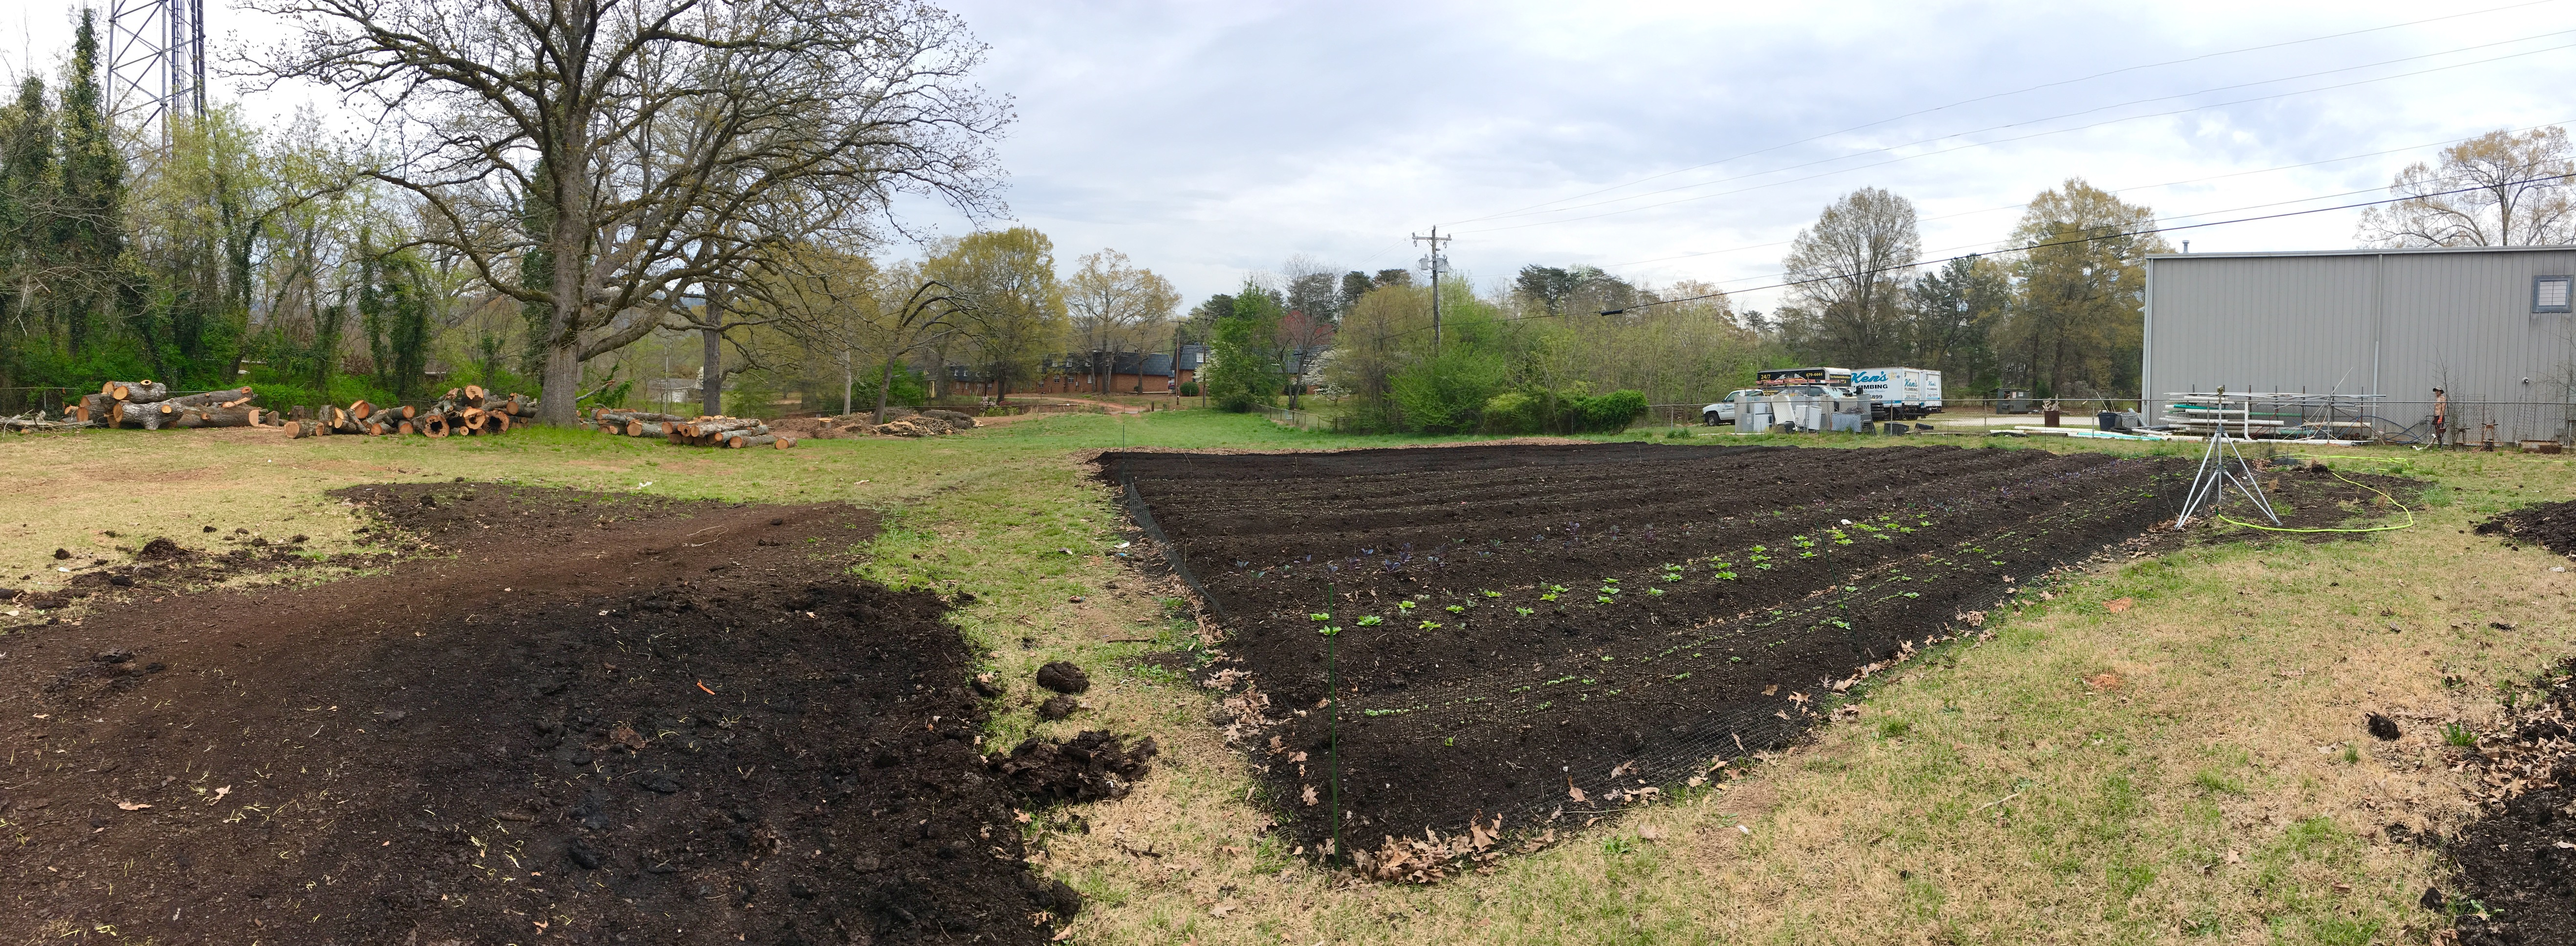 The first rows being installed at Oak Hill Cafe & Farm, in a no-till permaculture system. The farm isn't certified organic. but all of our methods meet or exceed the guidelines of the National Organic Program. No-till organic gardening